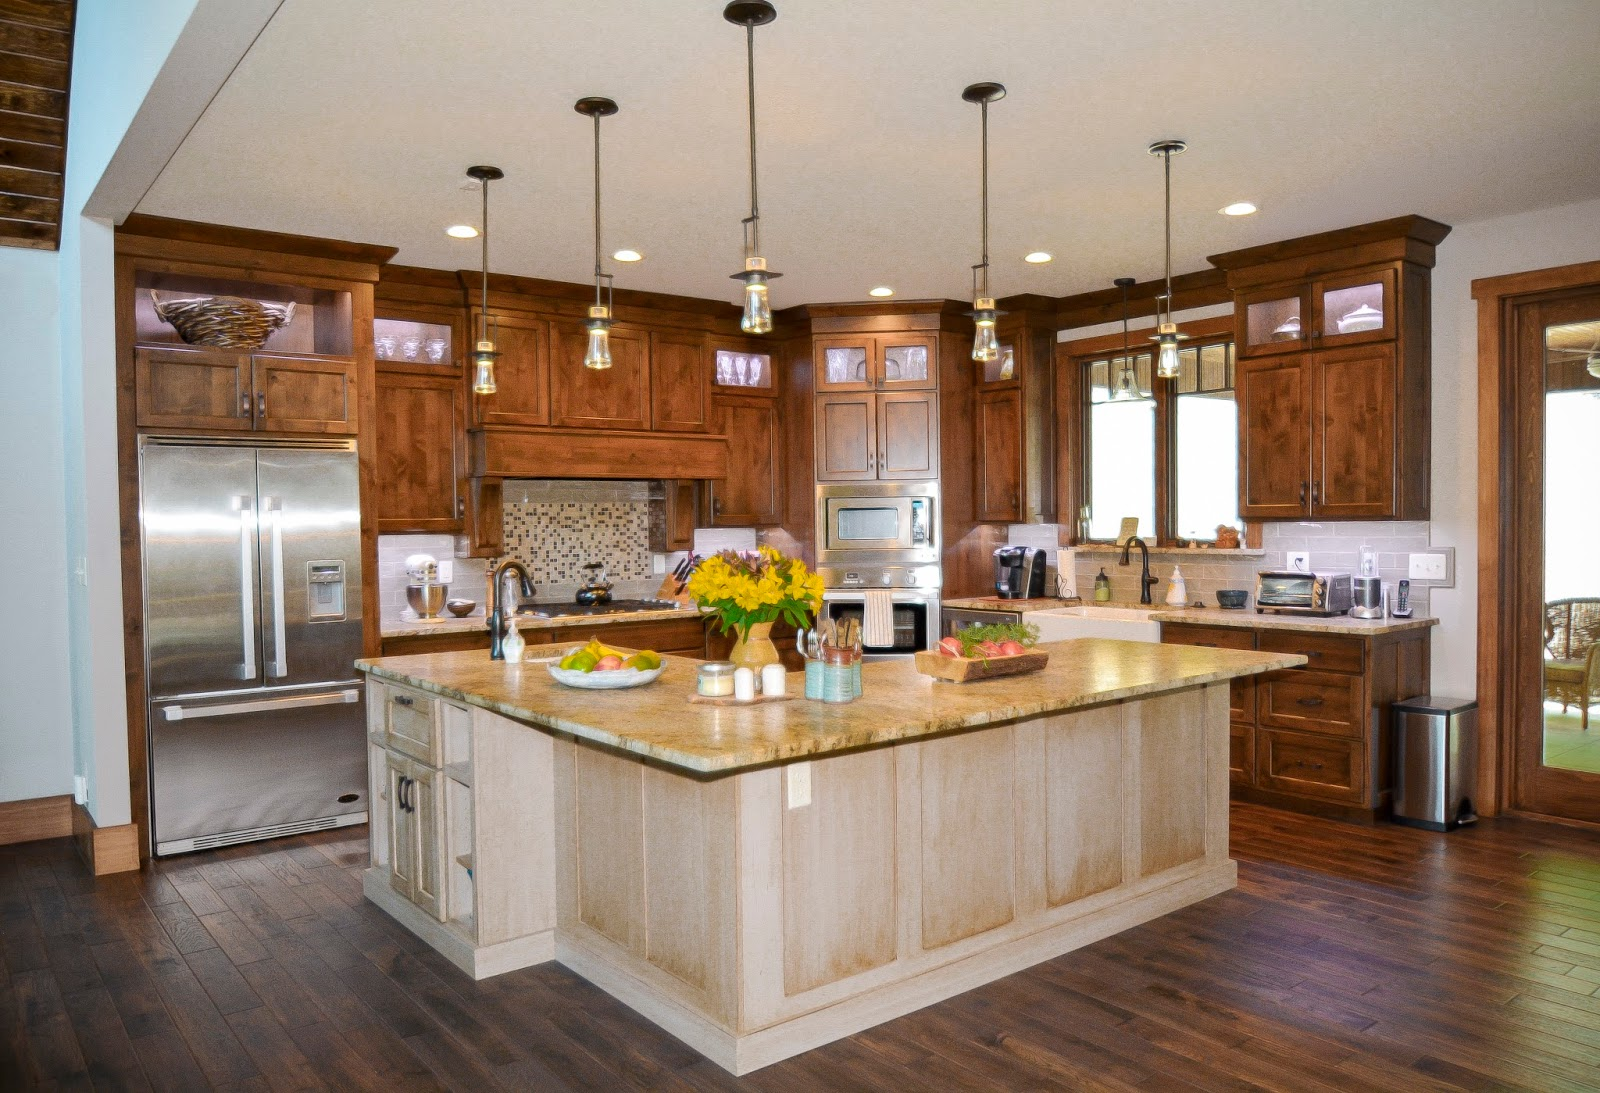 Kustom home design for Photos of new kitchen designs